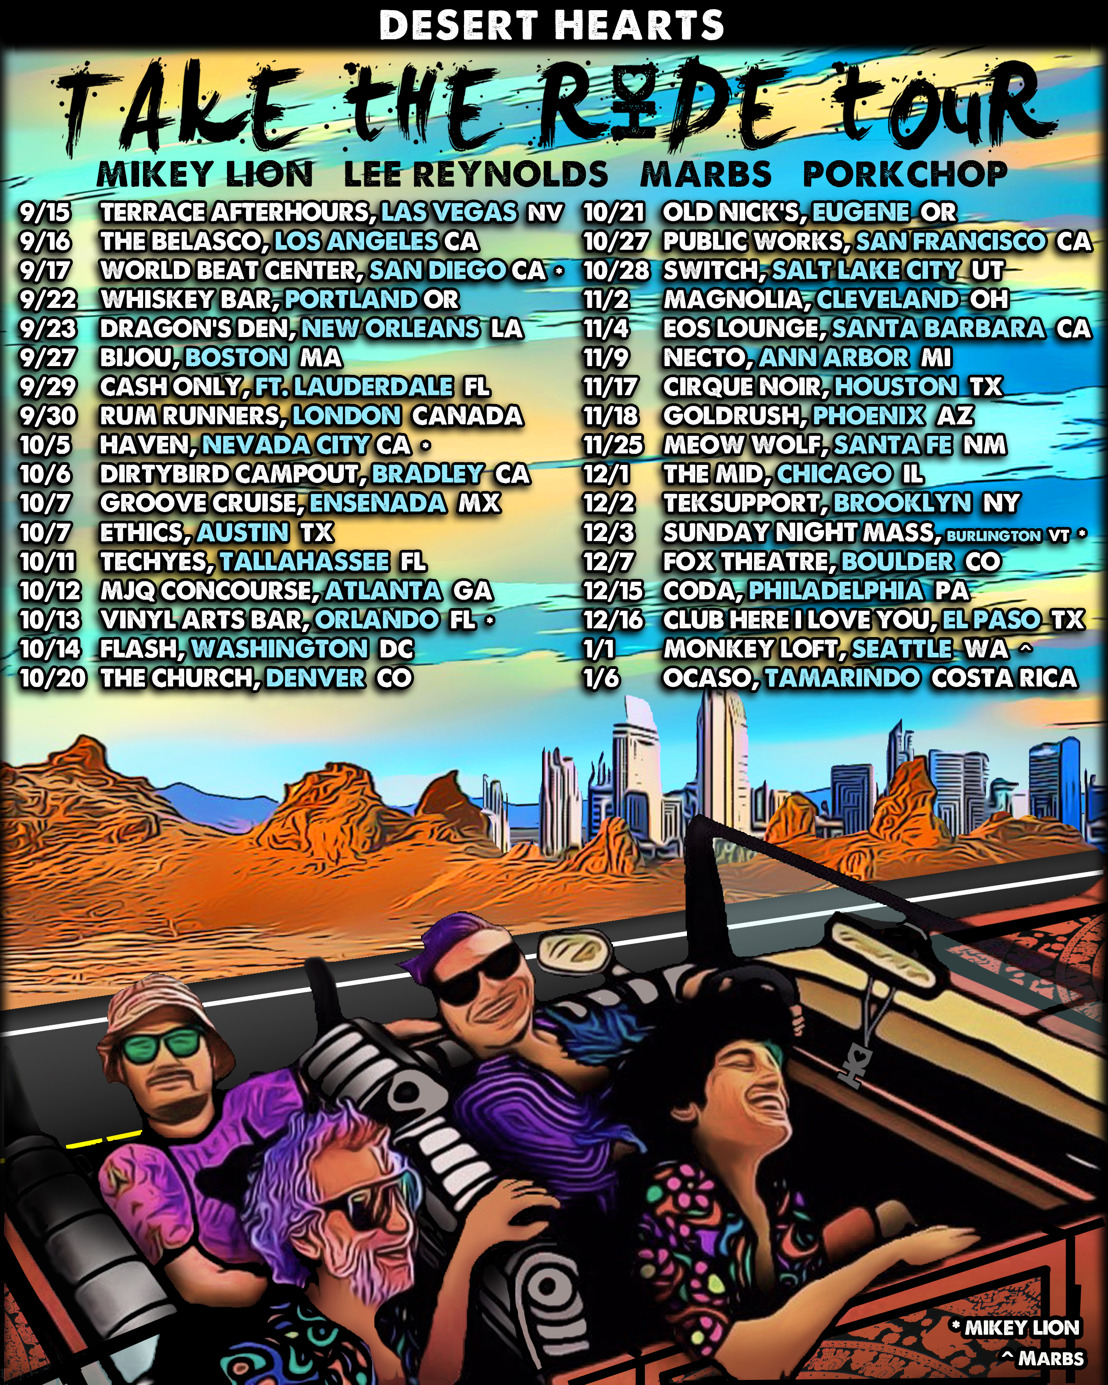 Desert Hearts Announces 'Take The Ride' Fall and Winter Tour